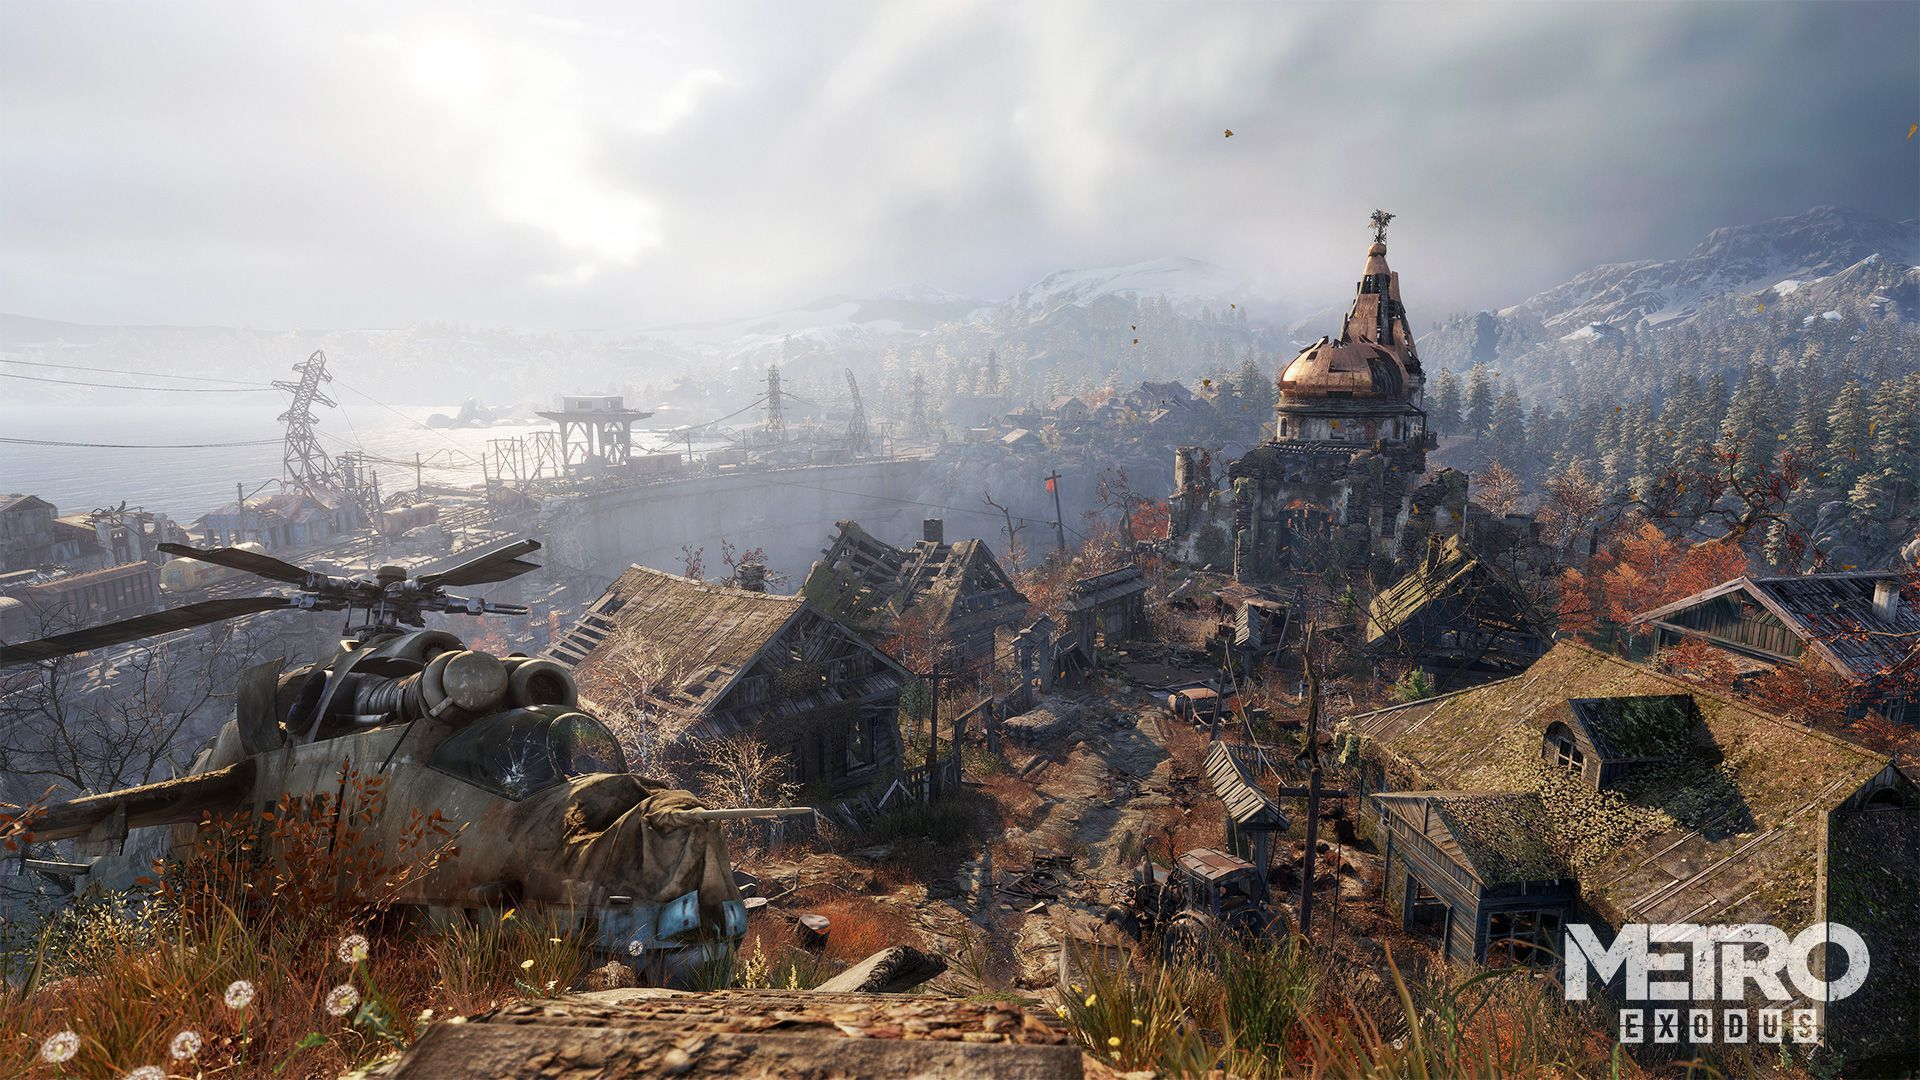 Metro Exodus 1080 Announce Screenshot 5 WATERMARK